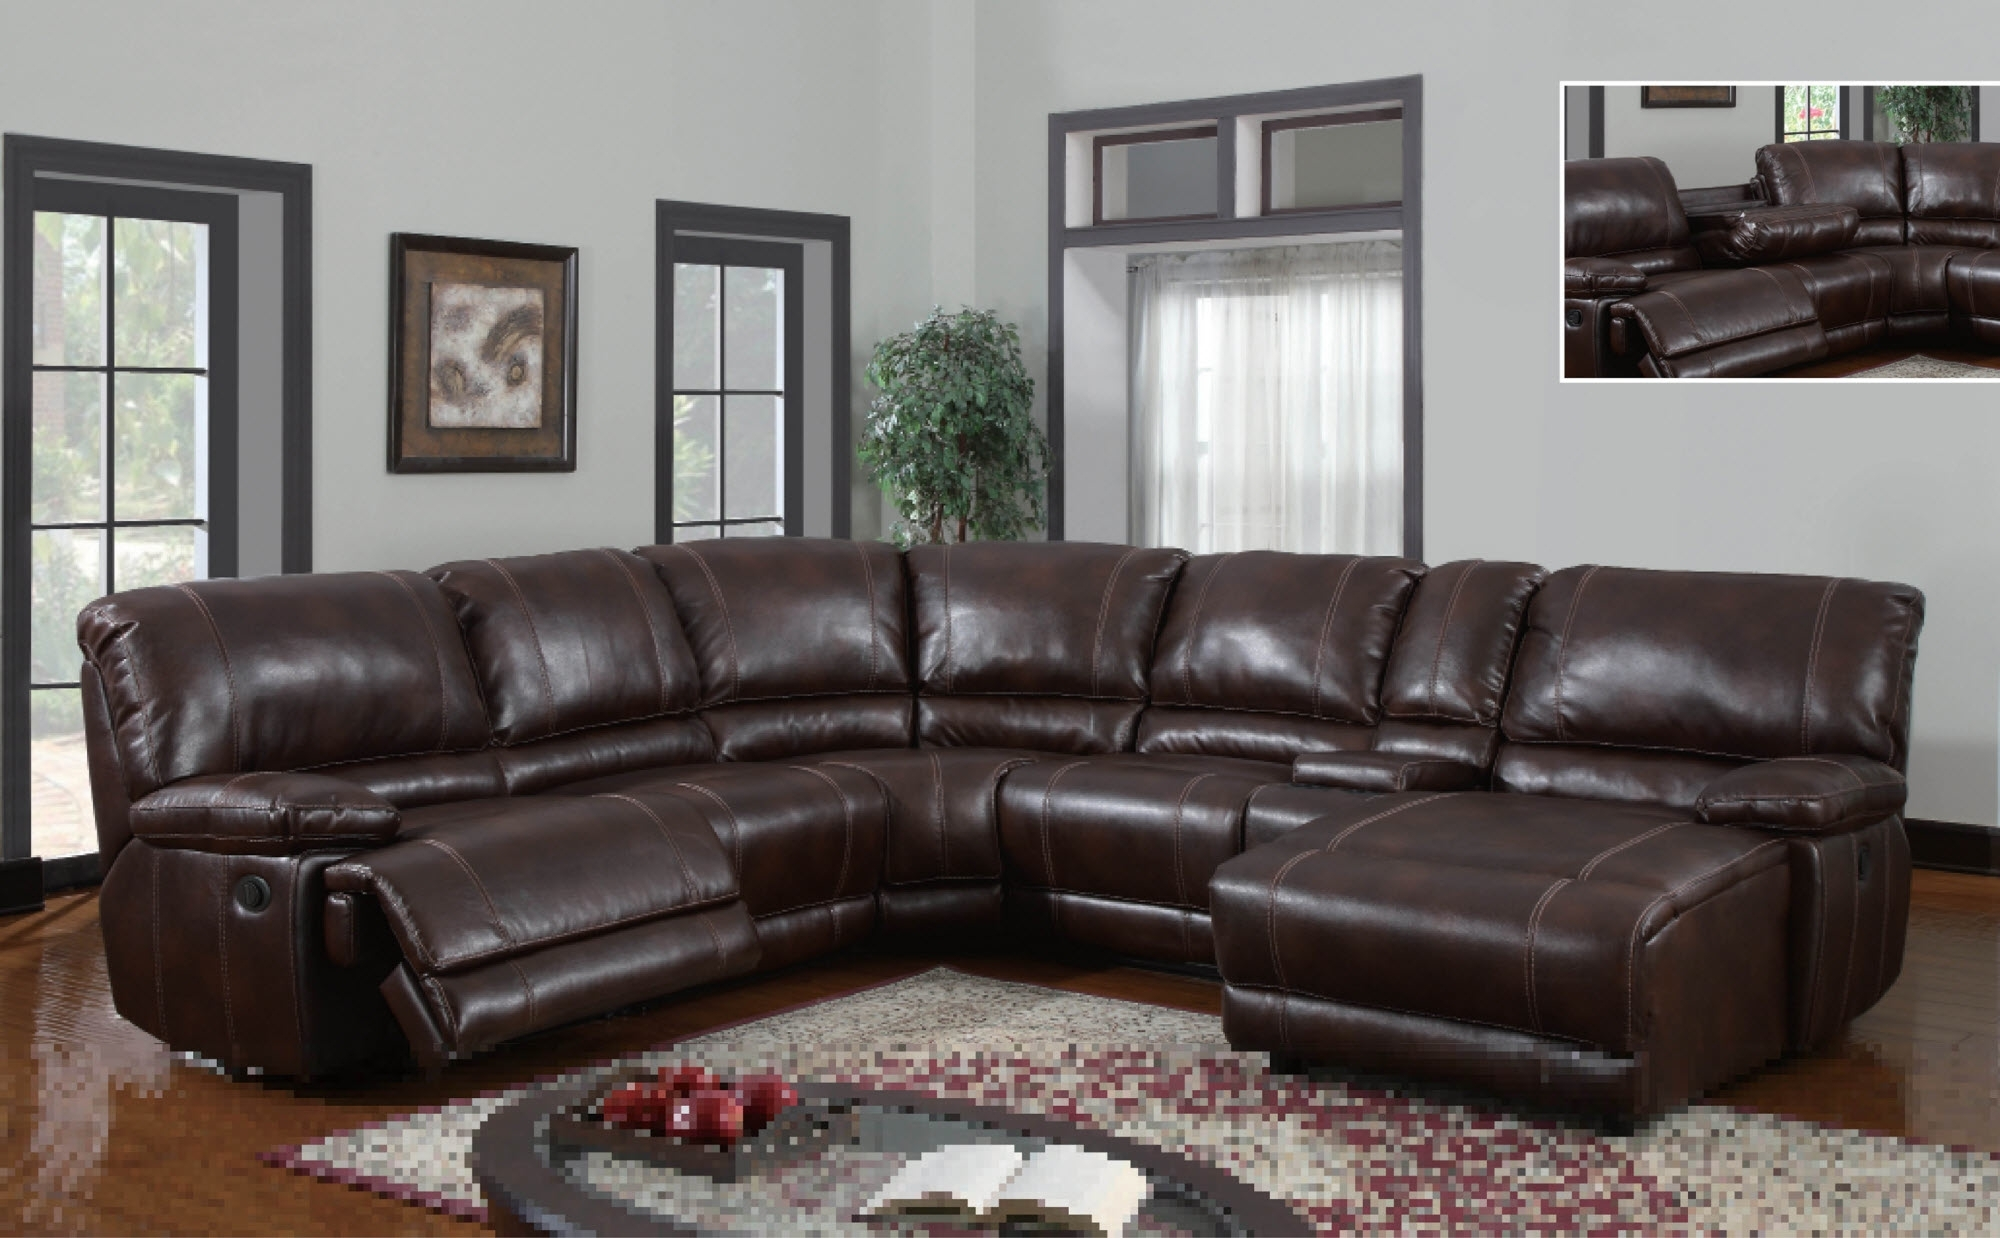 Awesome Curved Sectional Sofa With Recliner 38 On Sectional Sofas intended for Nashville Sectional Sofas (Image 3 of 10)